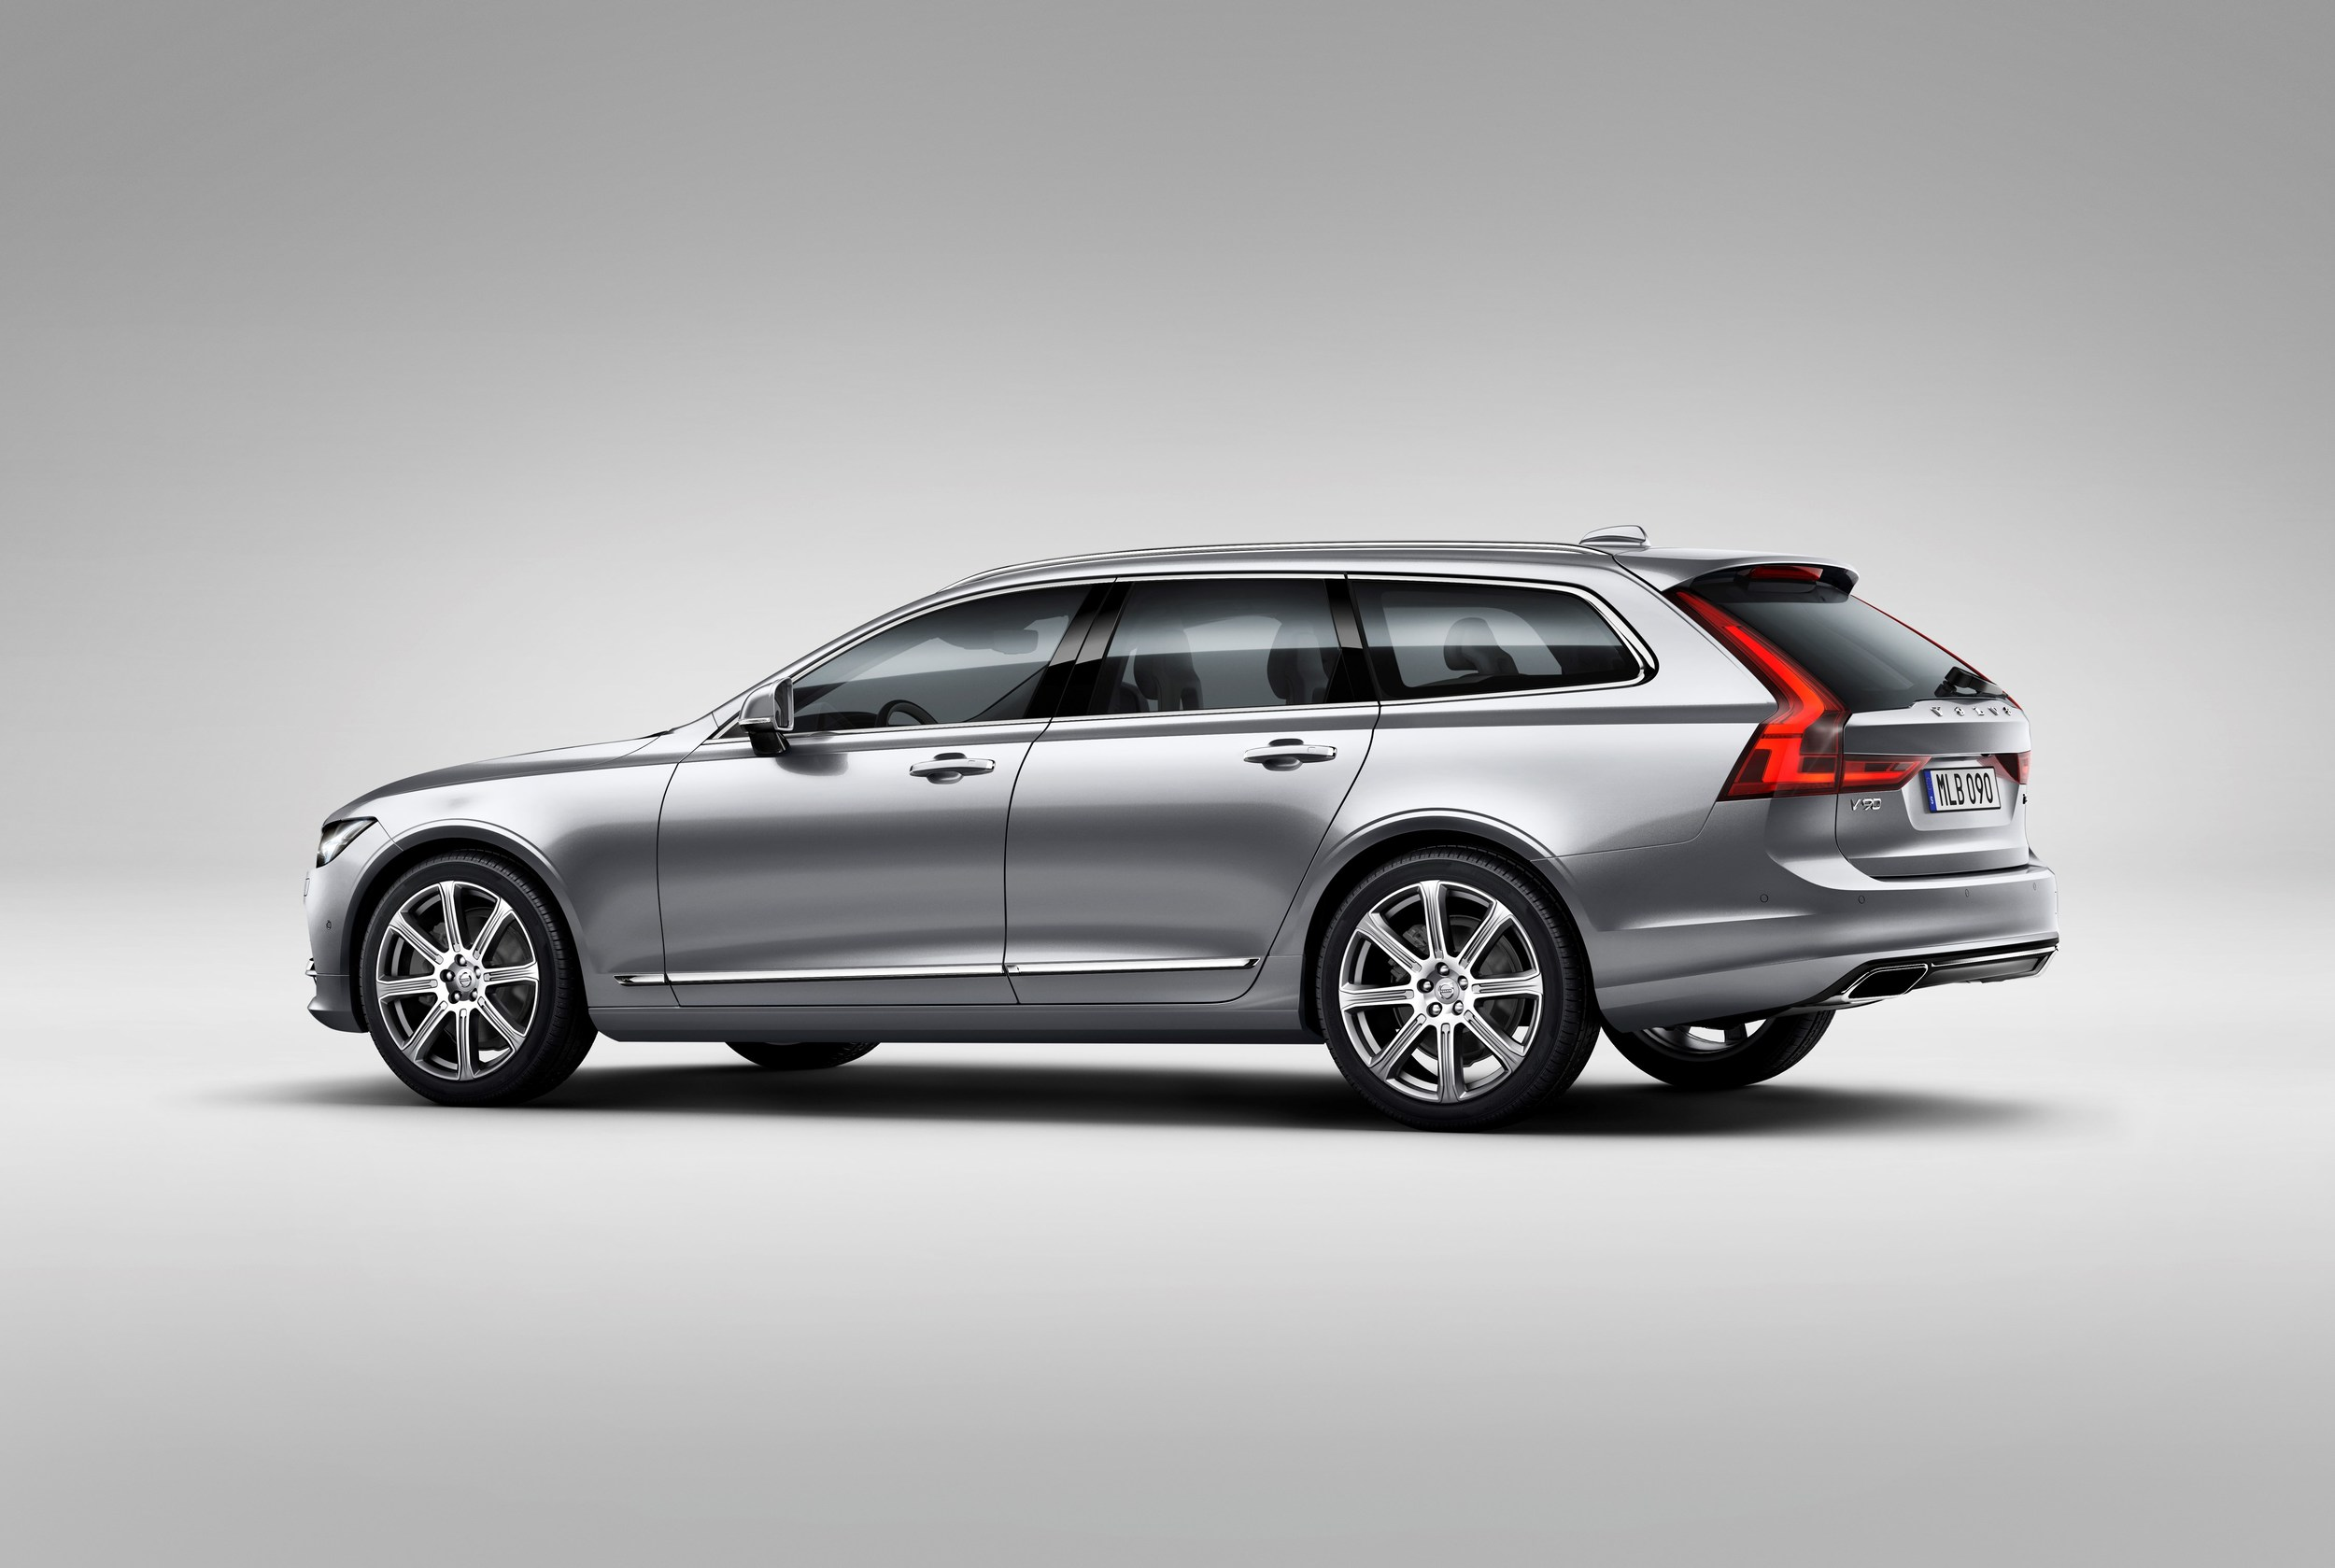 174114_Volvo_V90_Studio_Rear_3_4.jpg